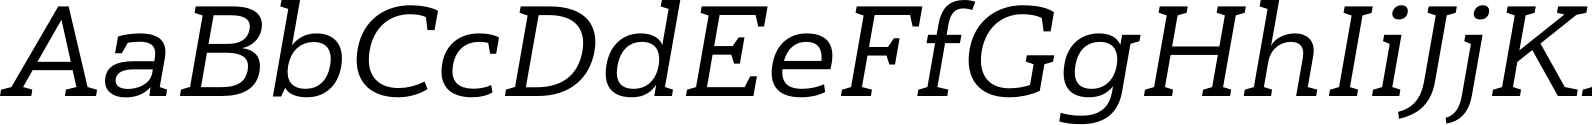 Haboro Slab Ext Medium Italic Font